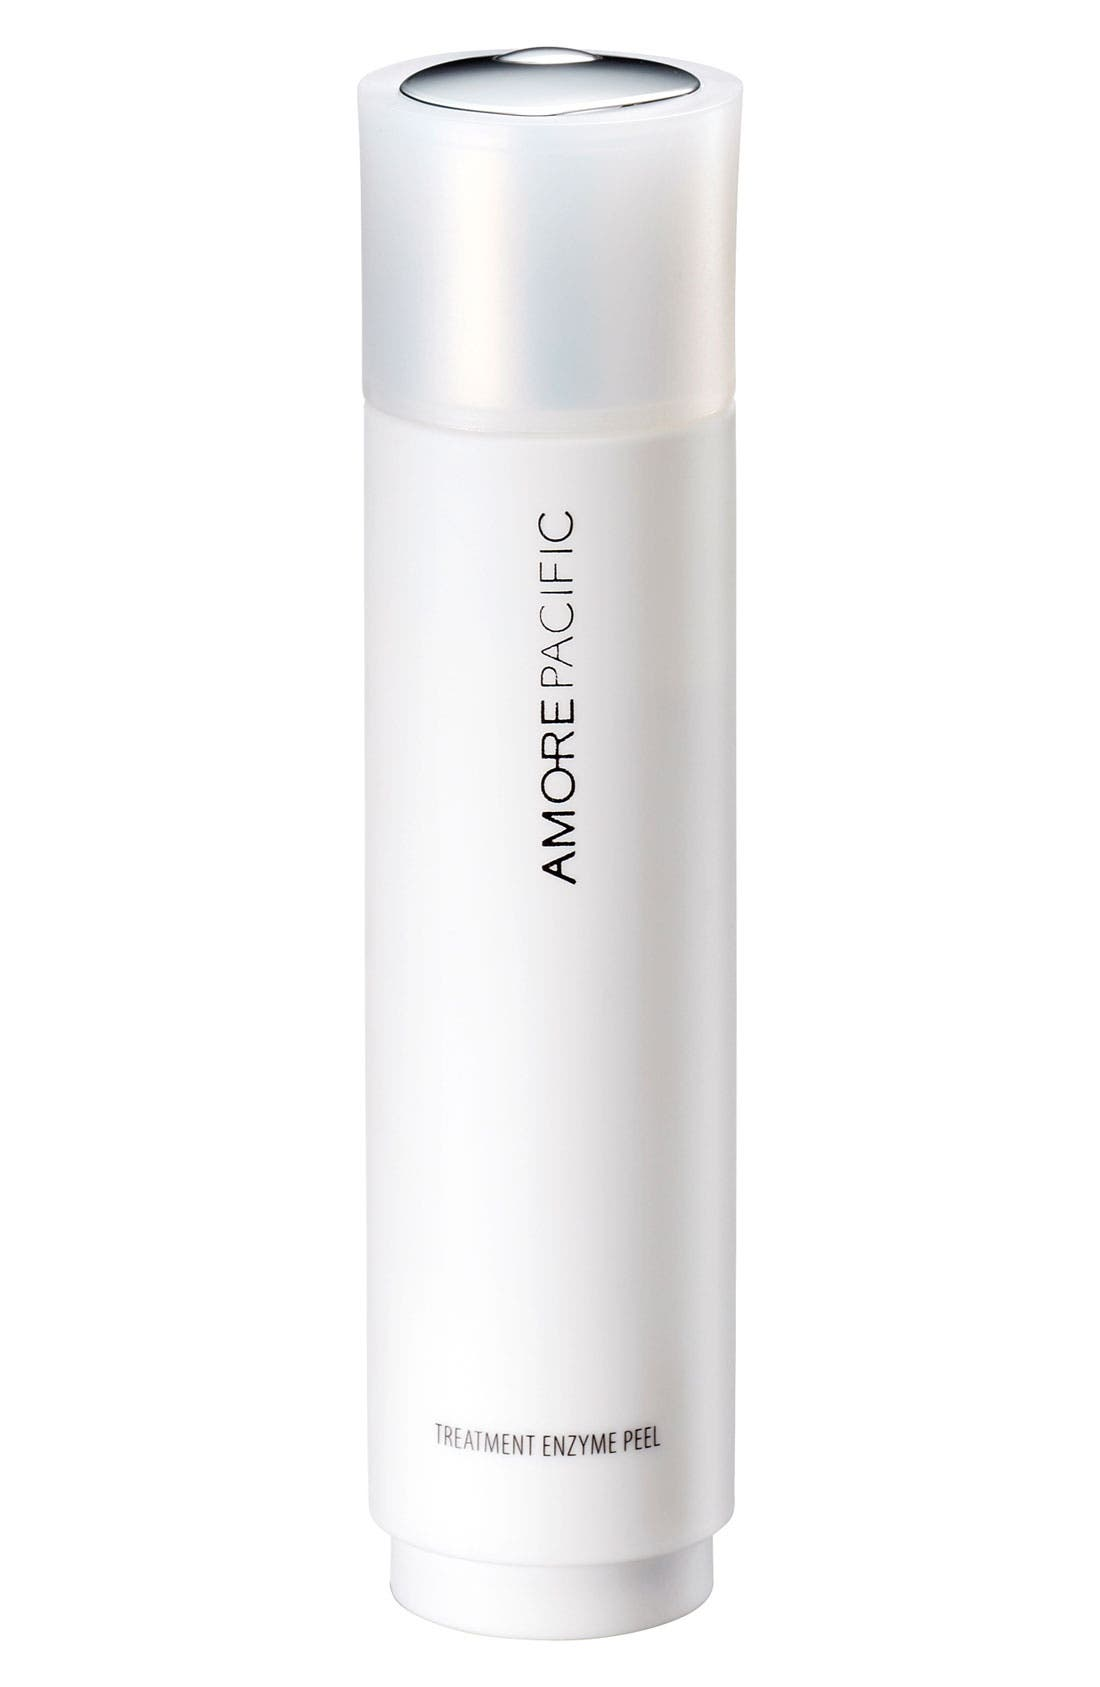 AMOREPACIFIC 'Treatment Enzyme Peel' Exfoliator